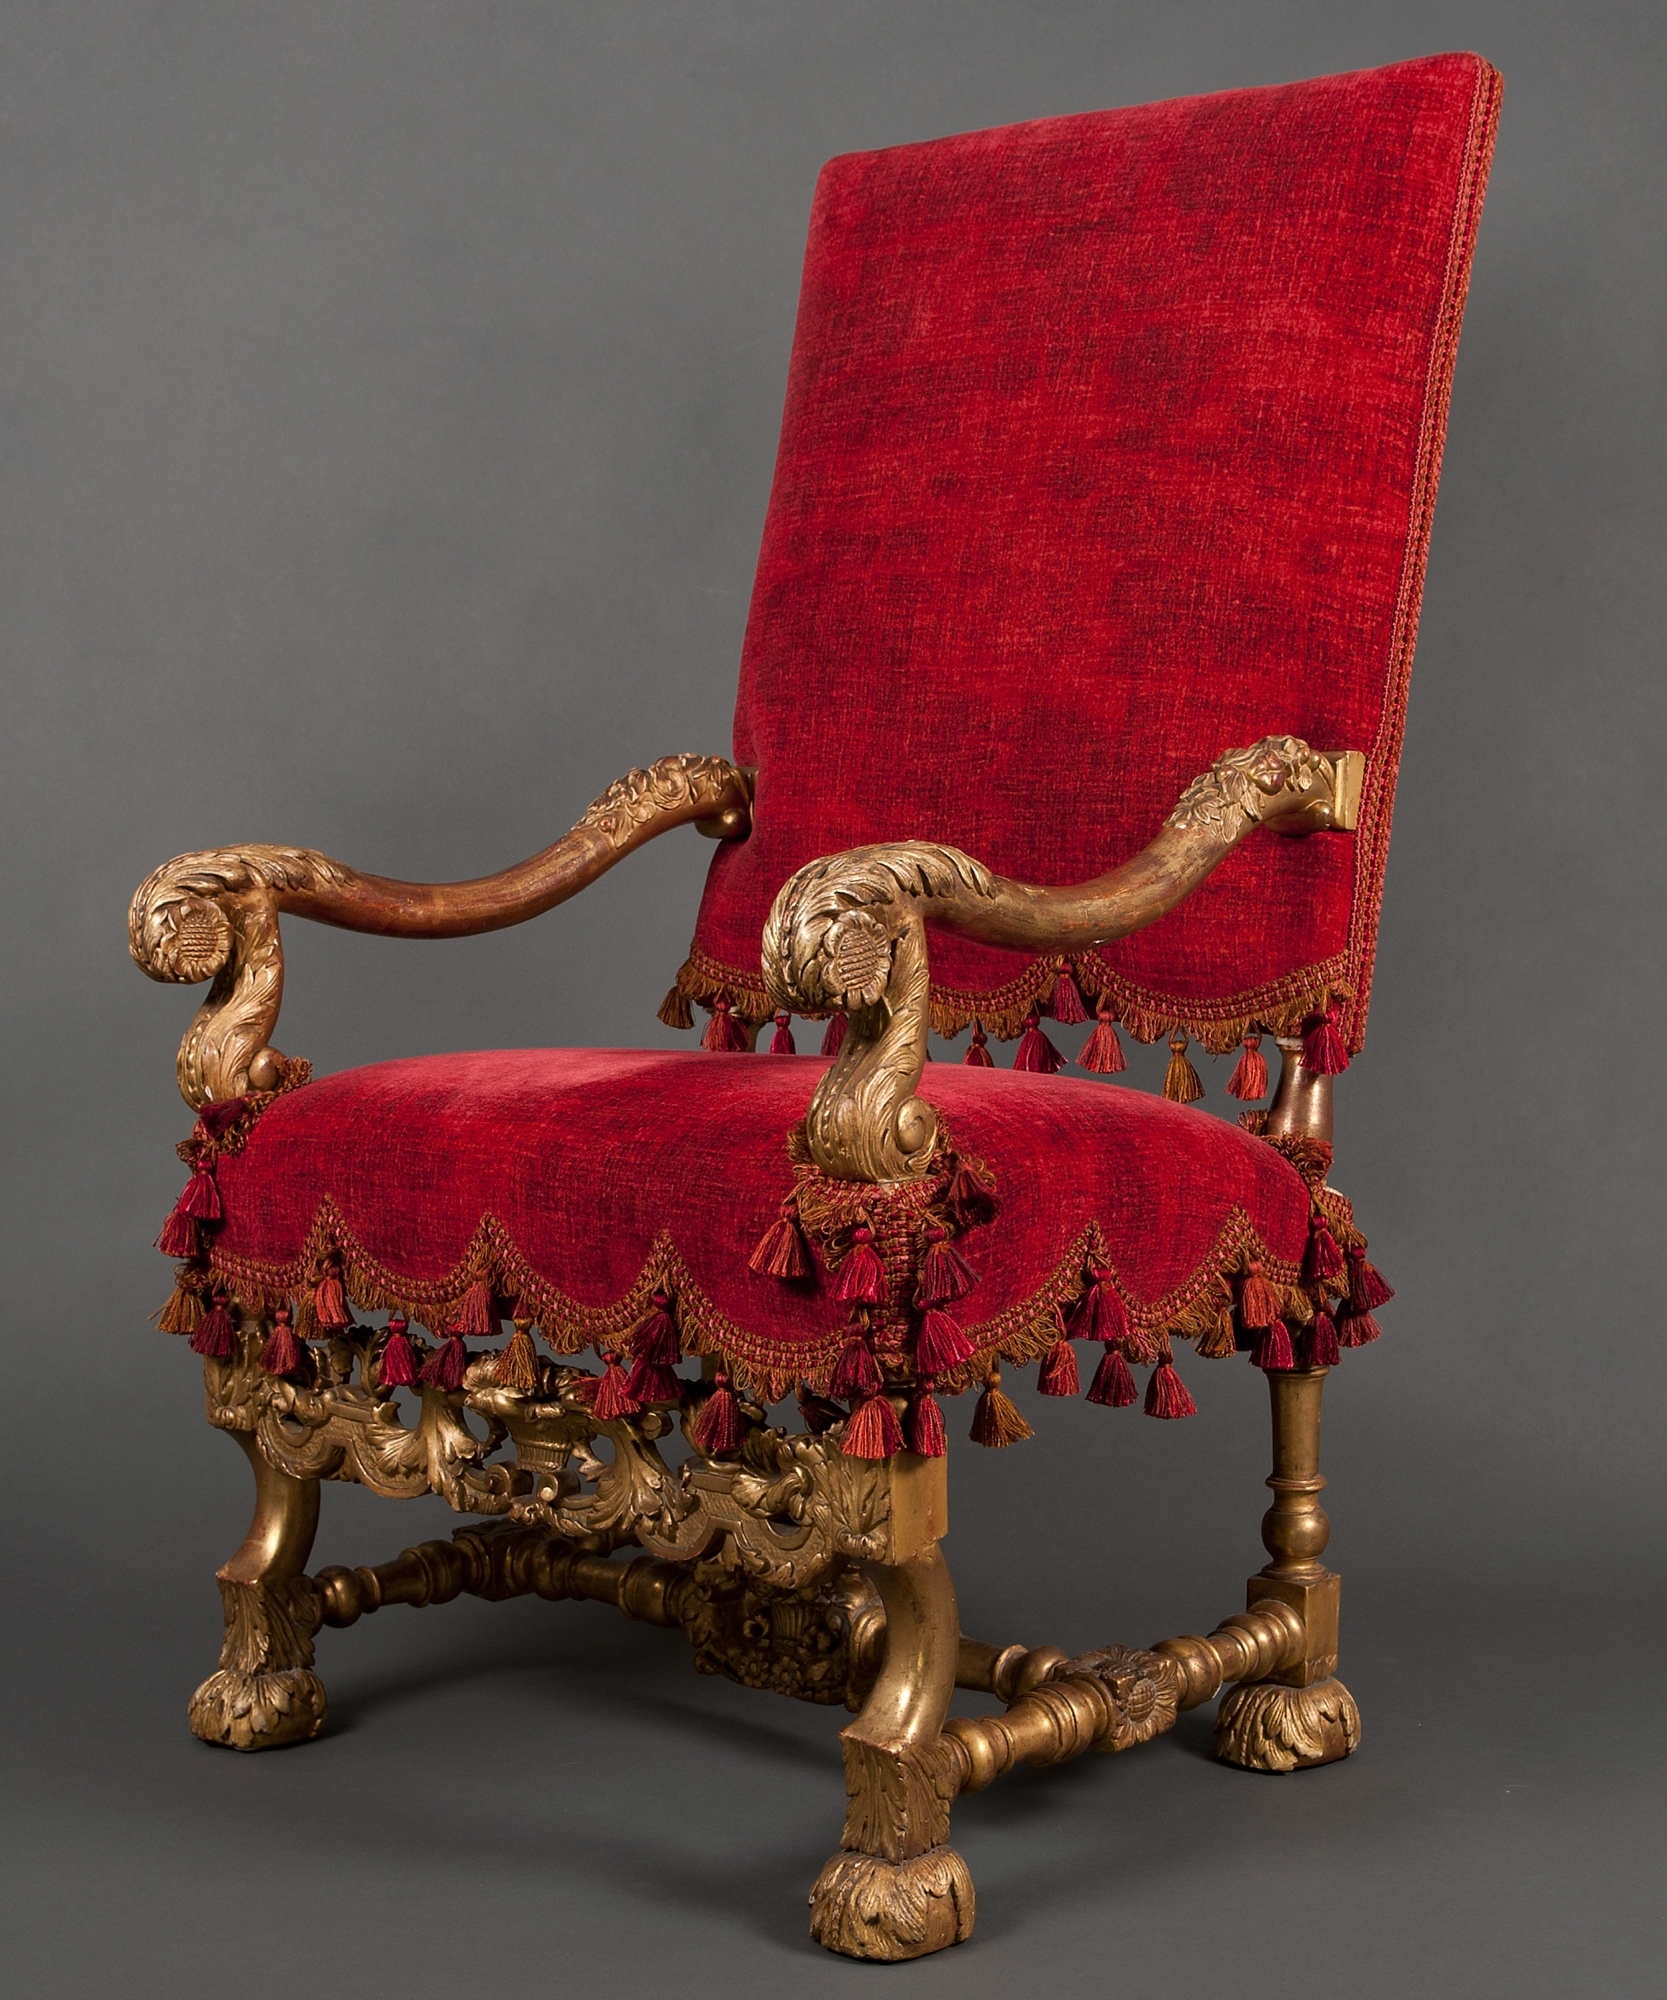 french velvet chair covers rentals online a louis xiv armchair | artlistings